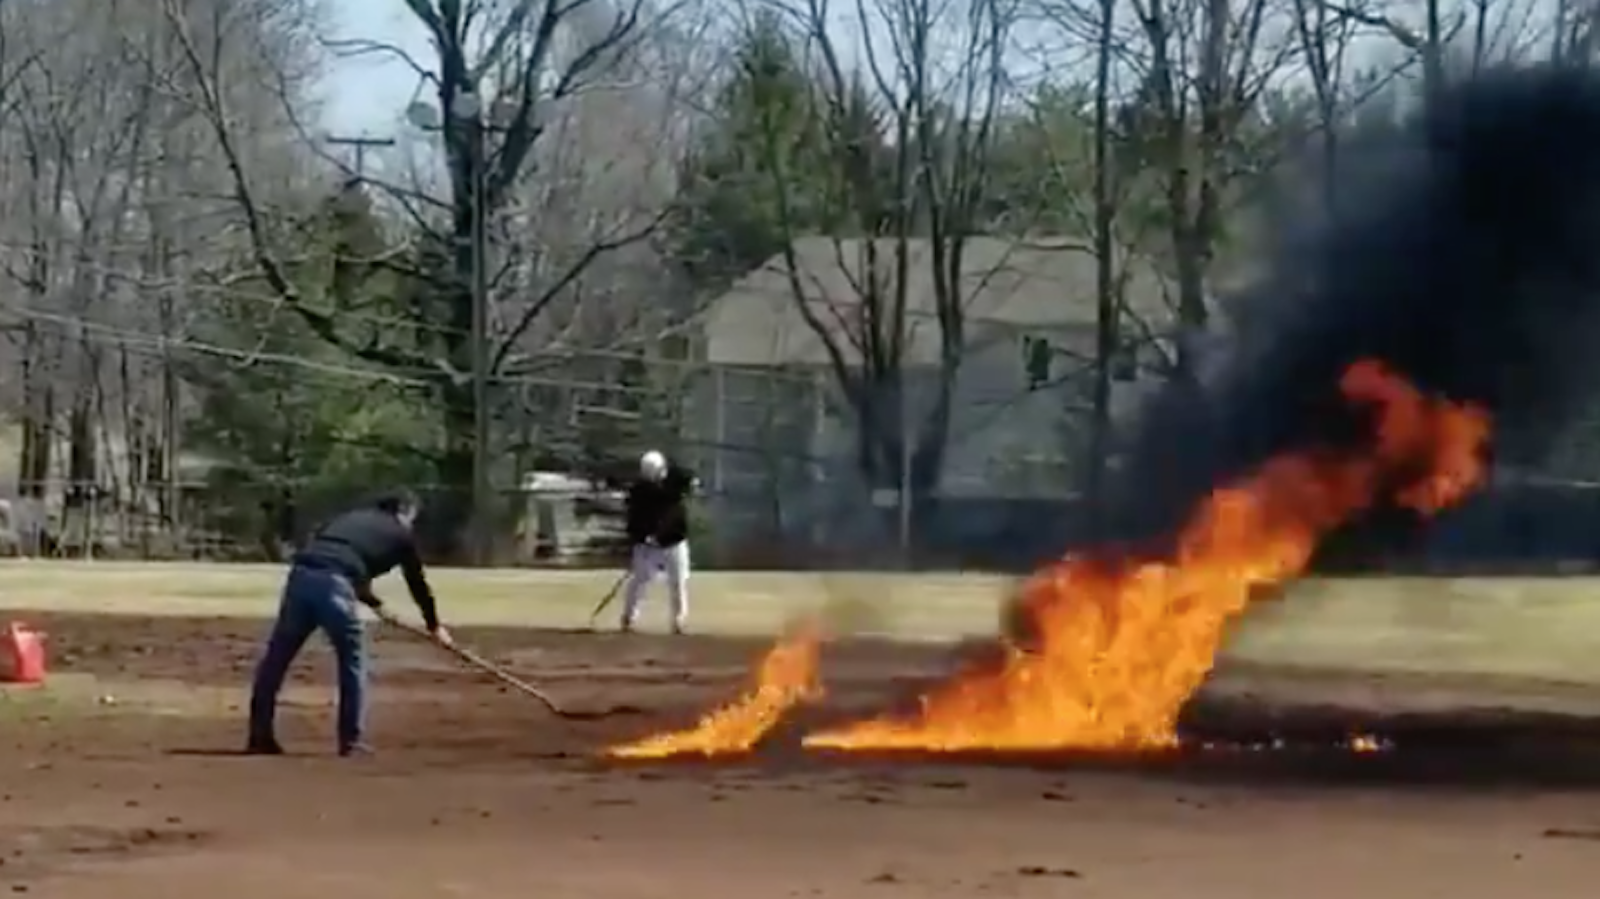 Baseball field destroyed by gasoline in Ridgefield, CT (video)